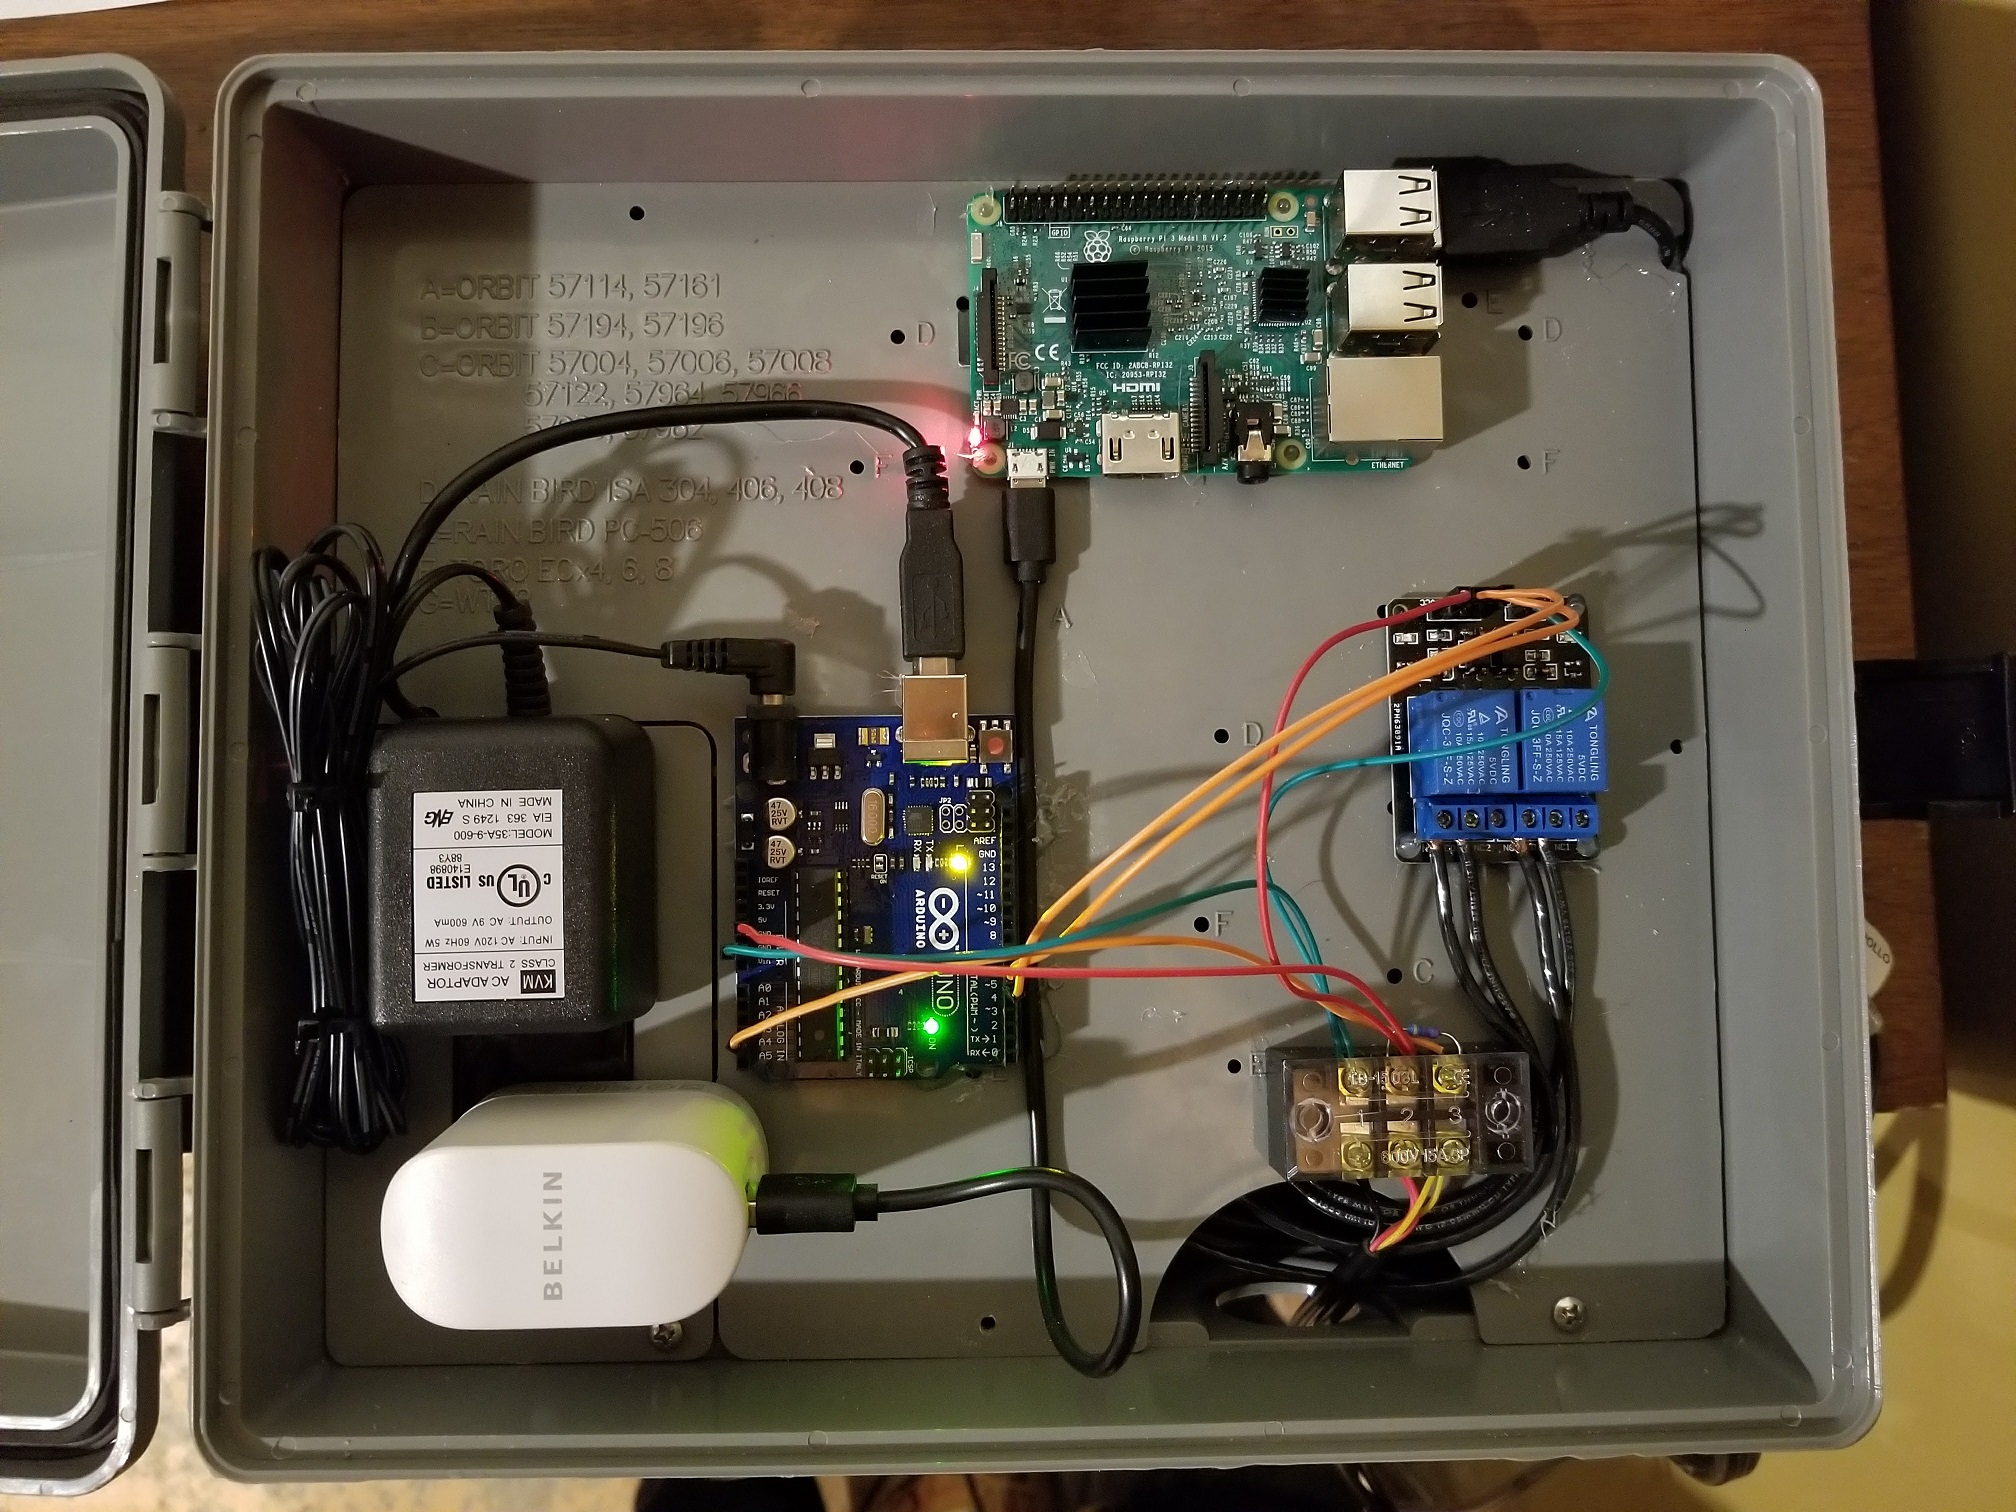 Dotps1 Brewing Your Own Brewpi On Stc 1000 Wiring I Wired My Device According To This Diagram Here Is The Finished Product Case